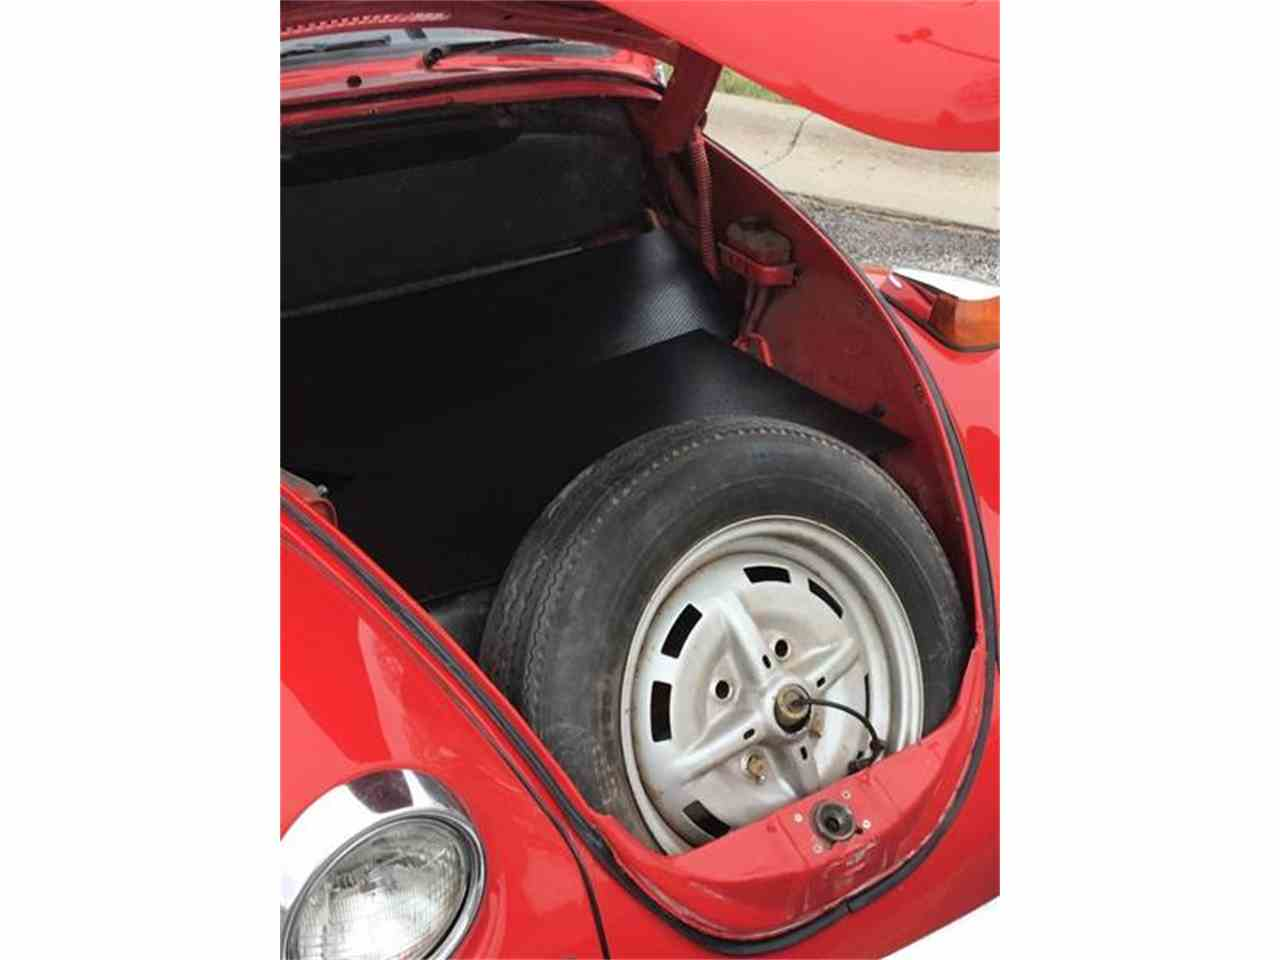 Large Picture of '74 Beetle - $12,500.00 - MBL4